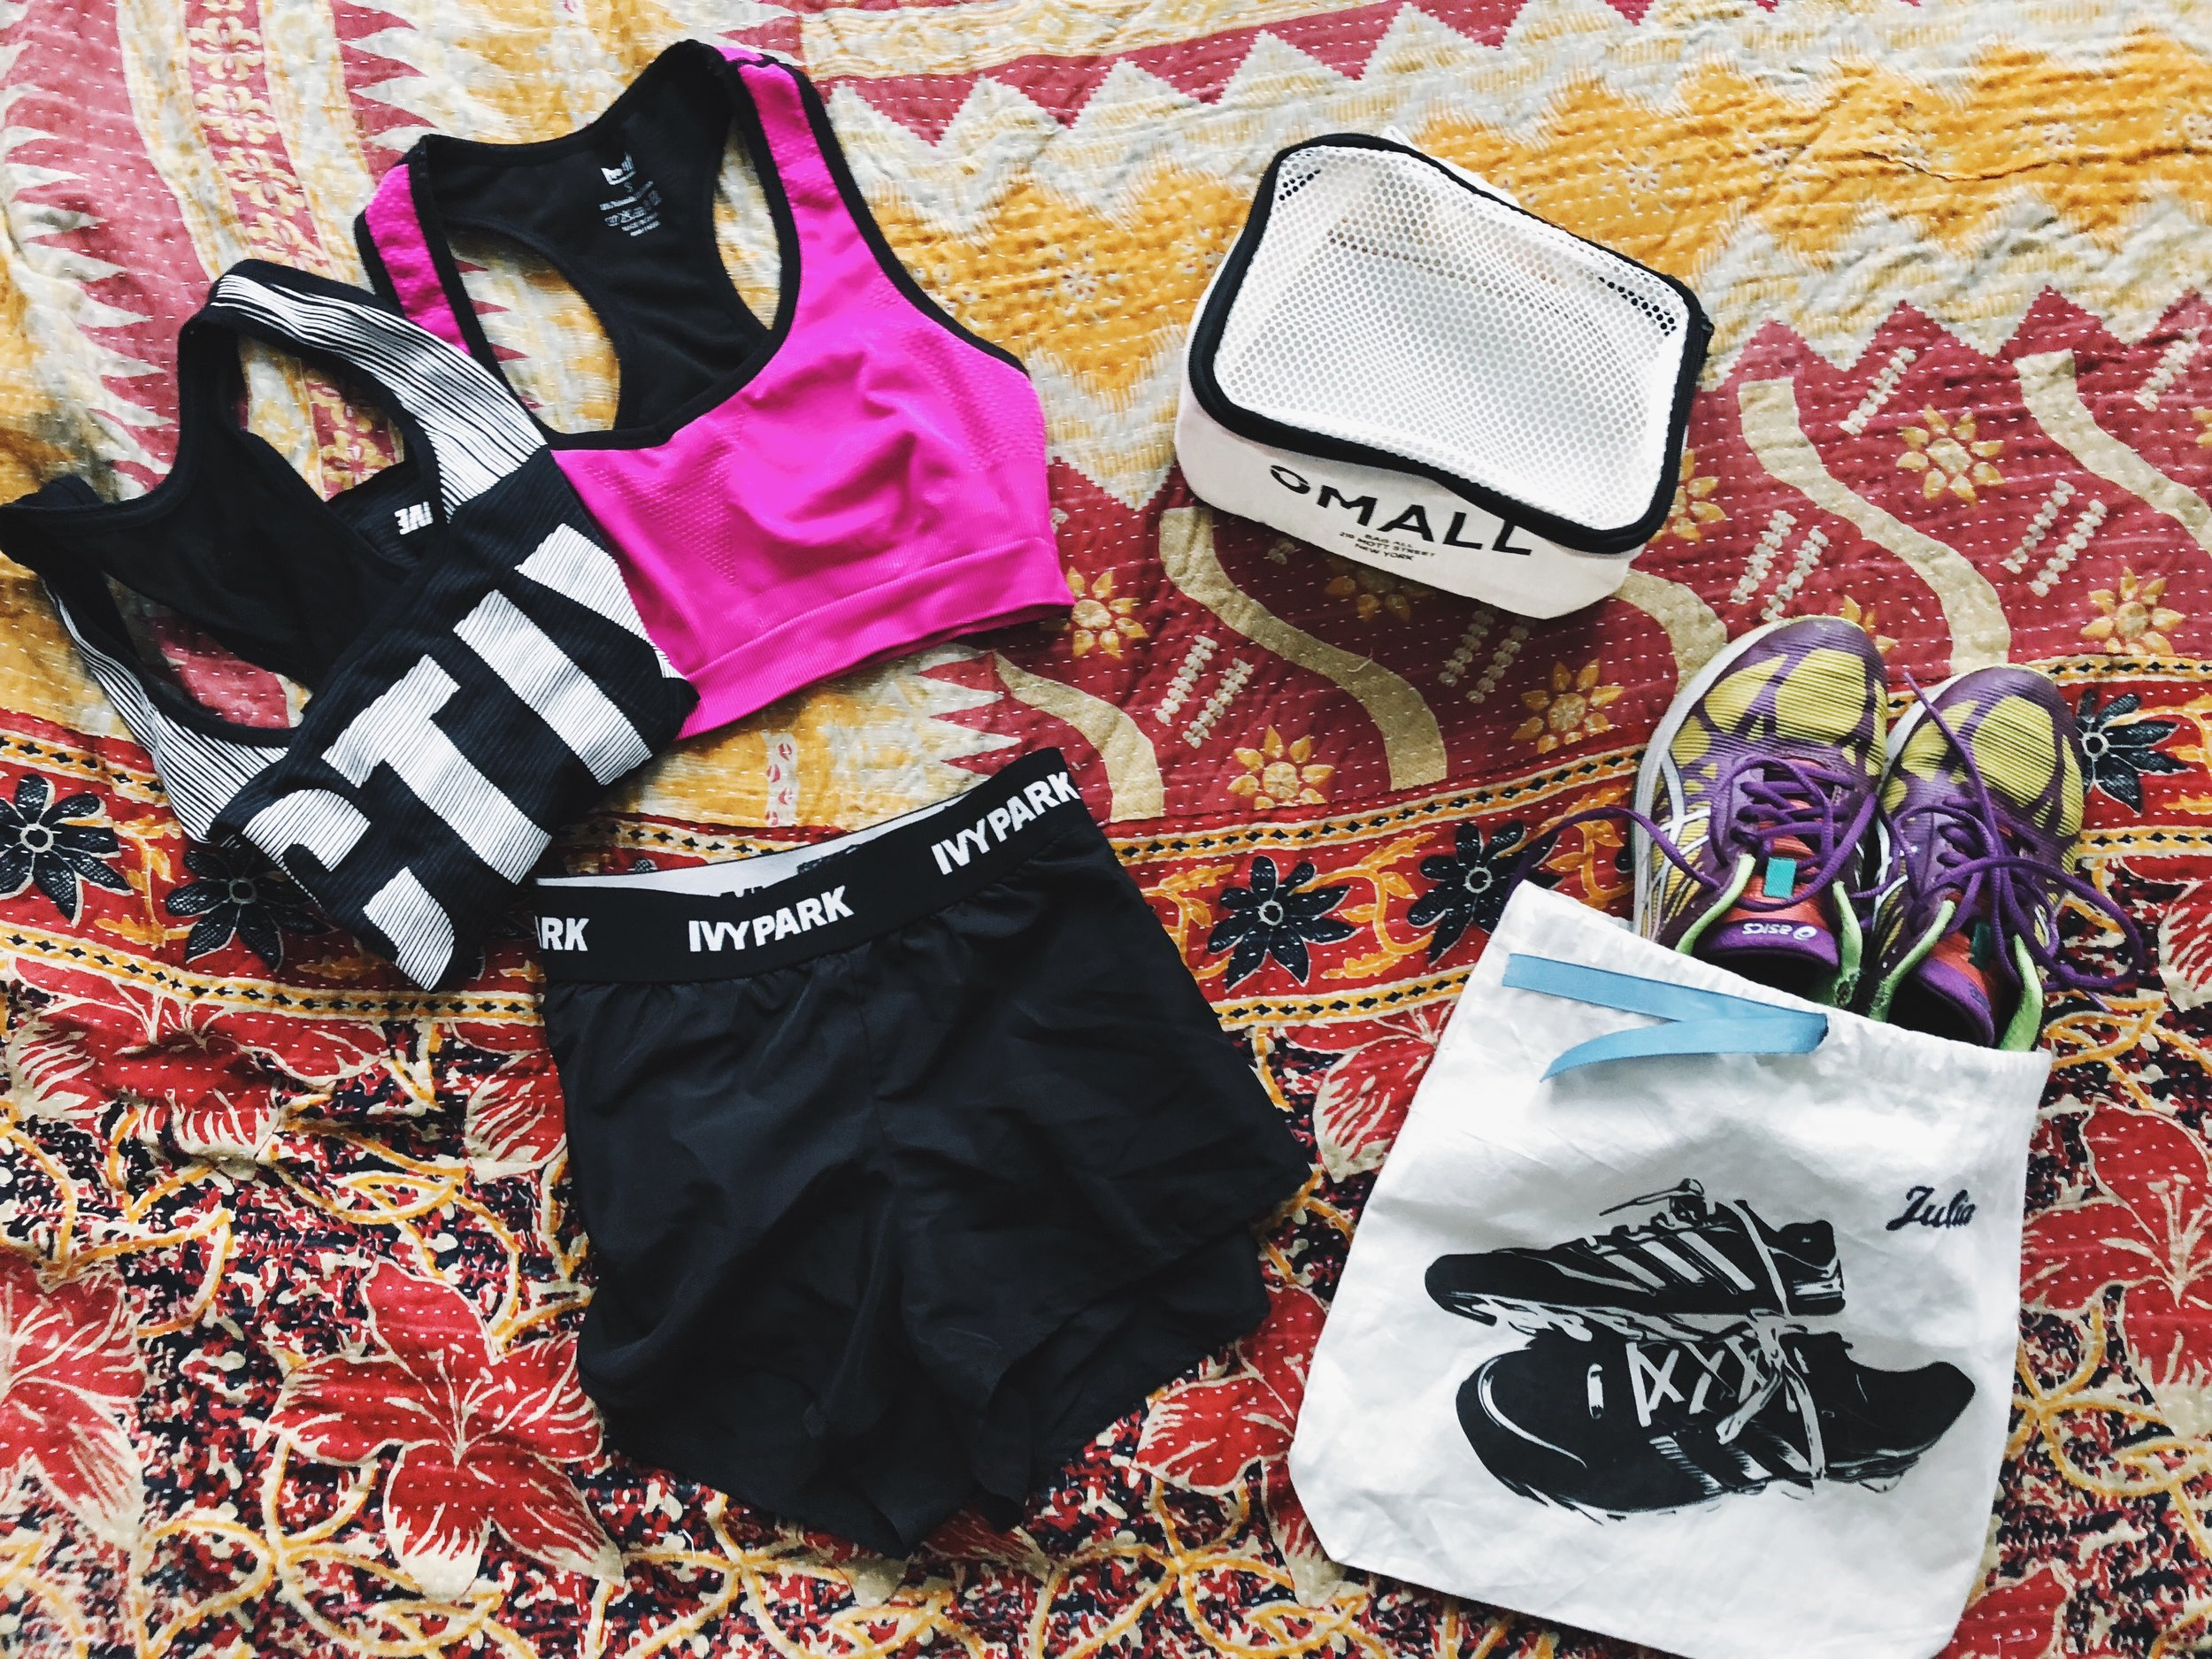 - Exercise gear